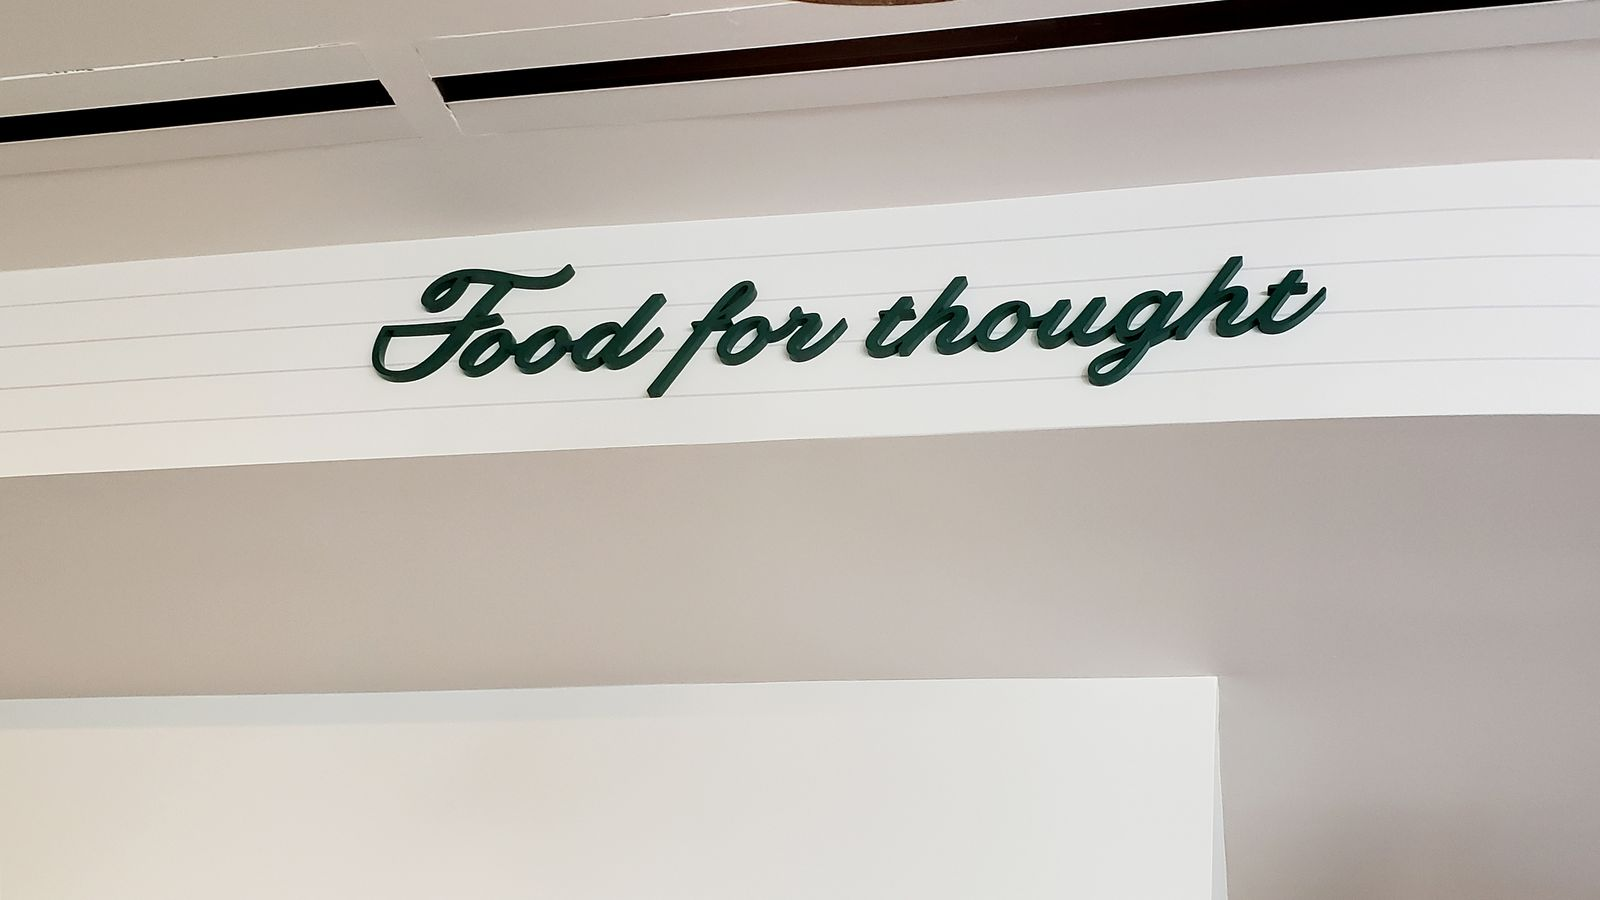 green painted acrylic letters